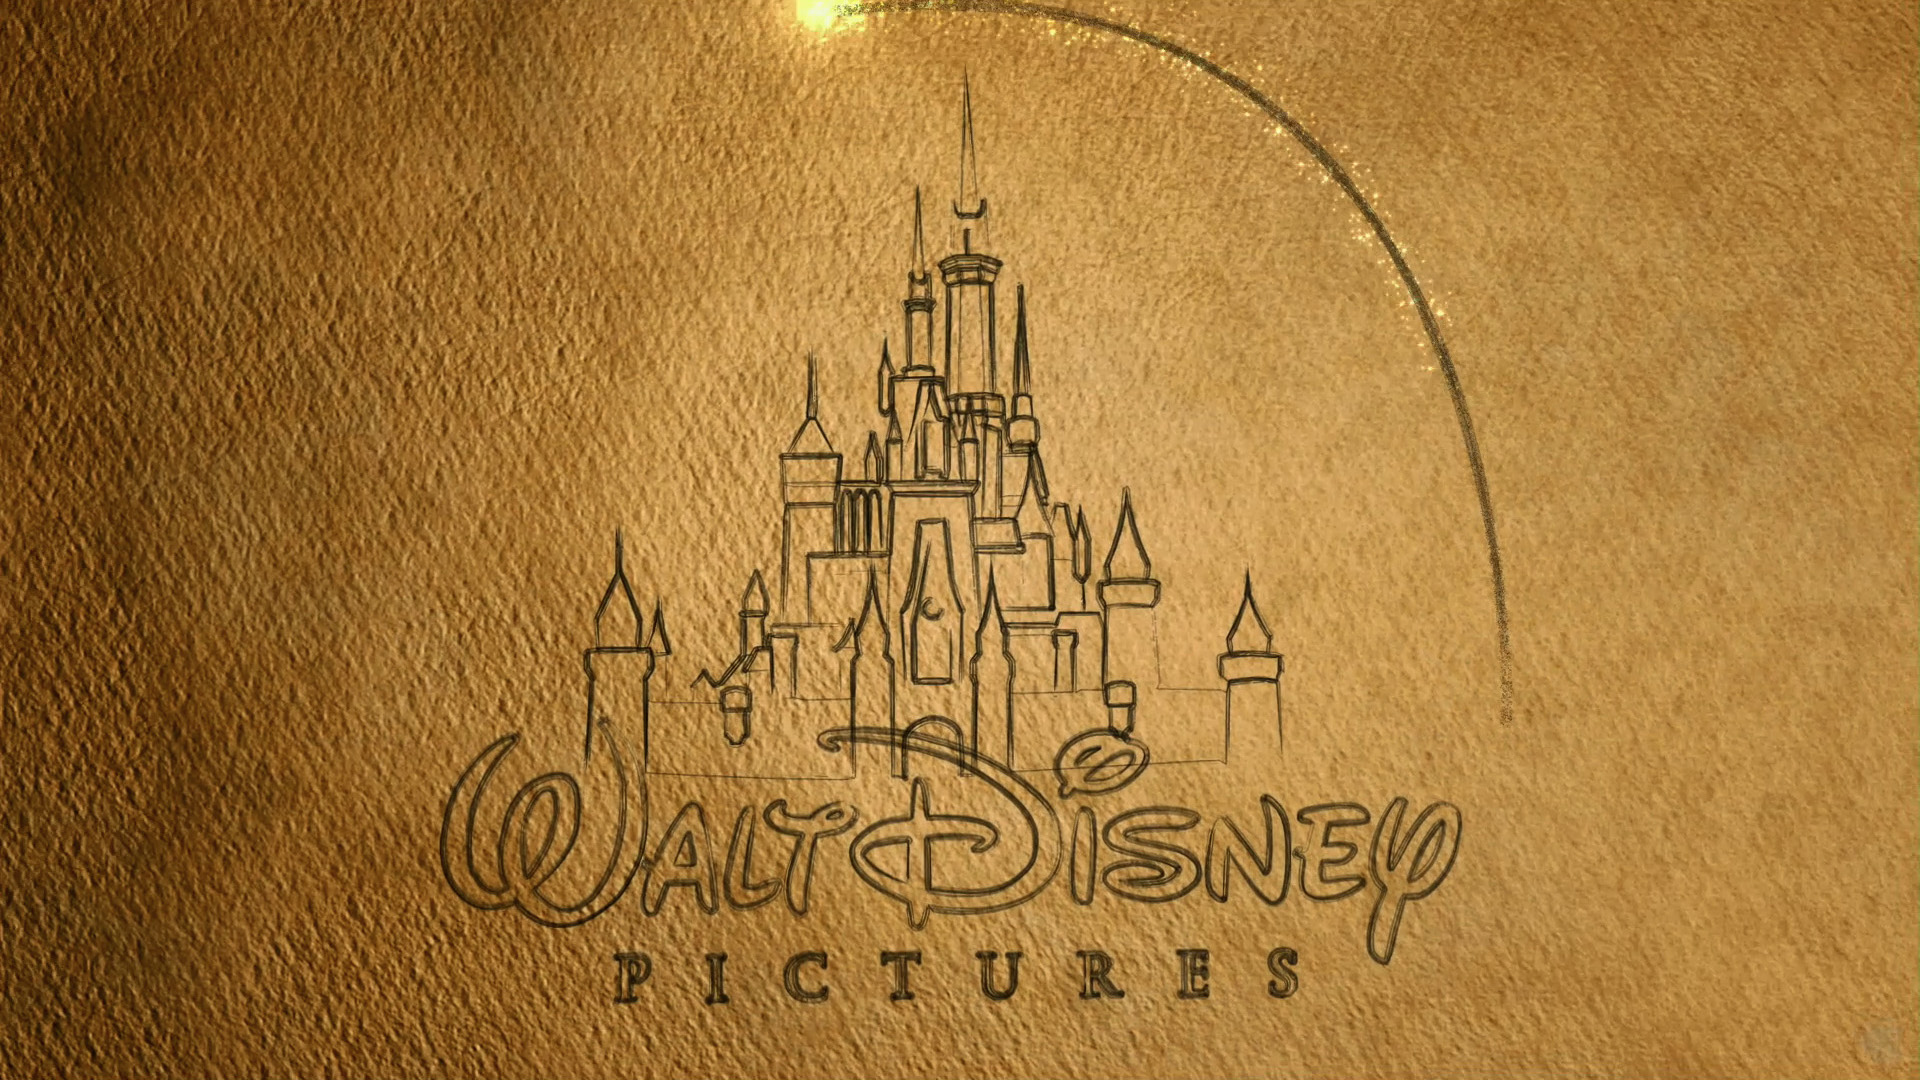 wallpapers wallpaper disney cool images classic 1920x1080 1920x1080